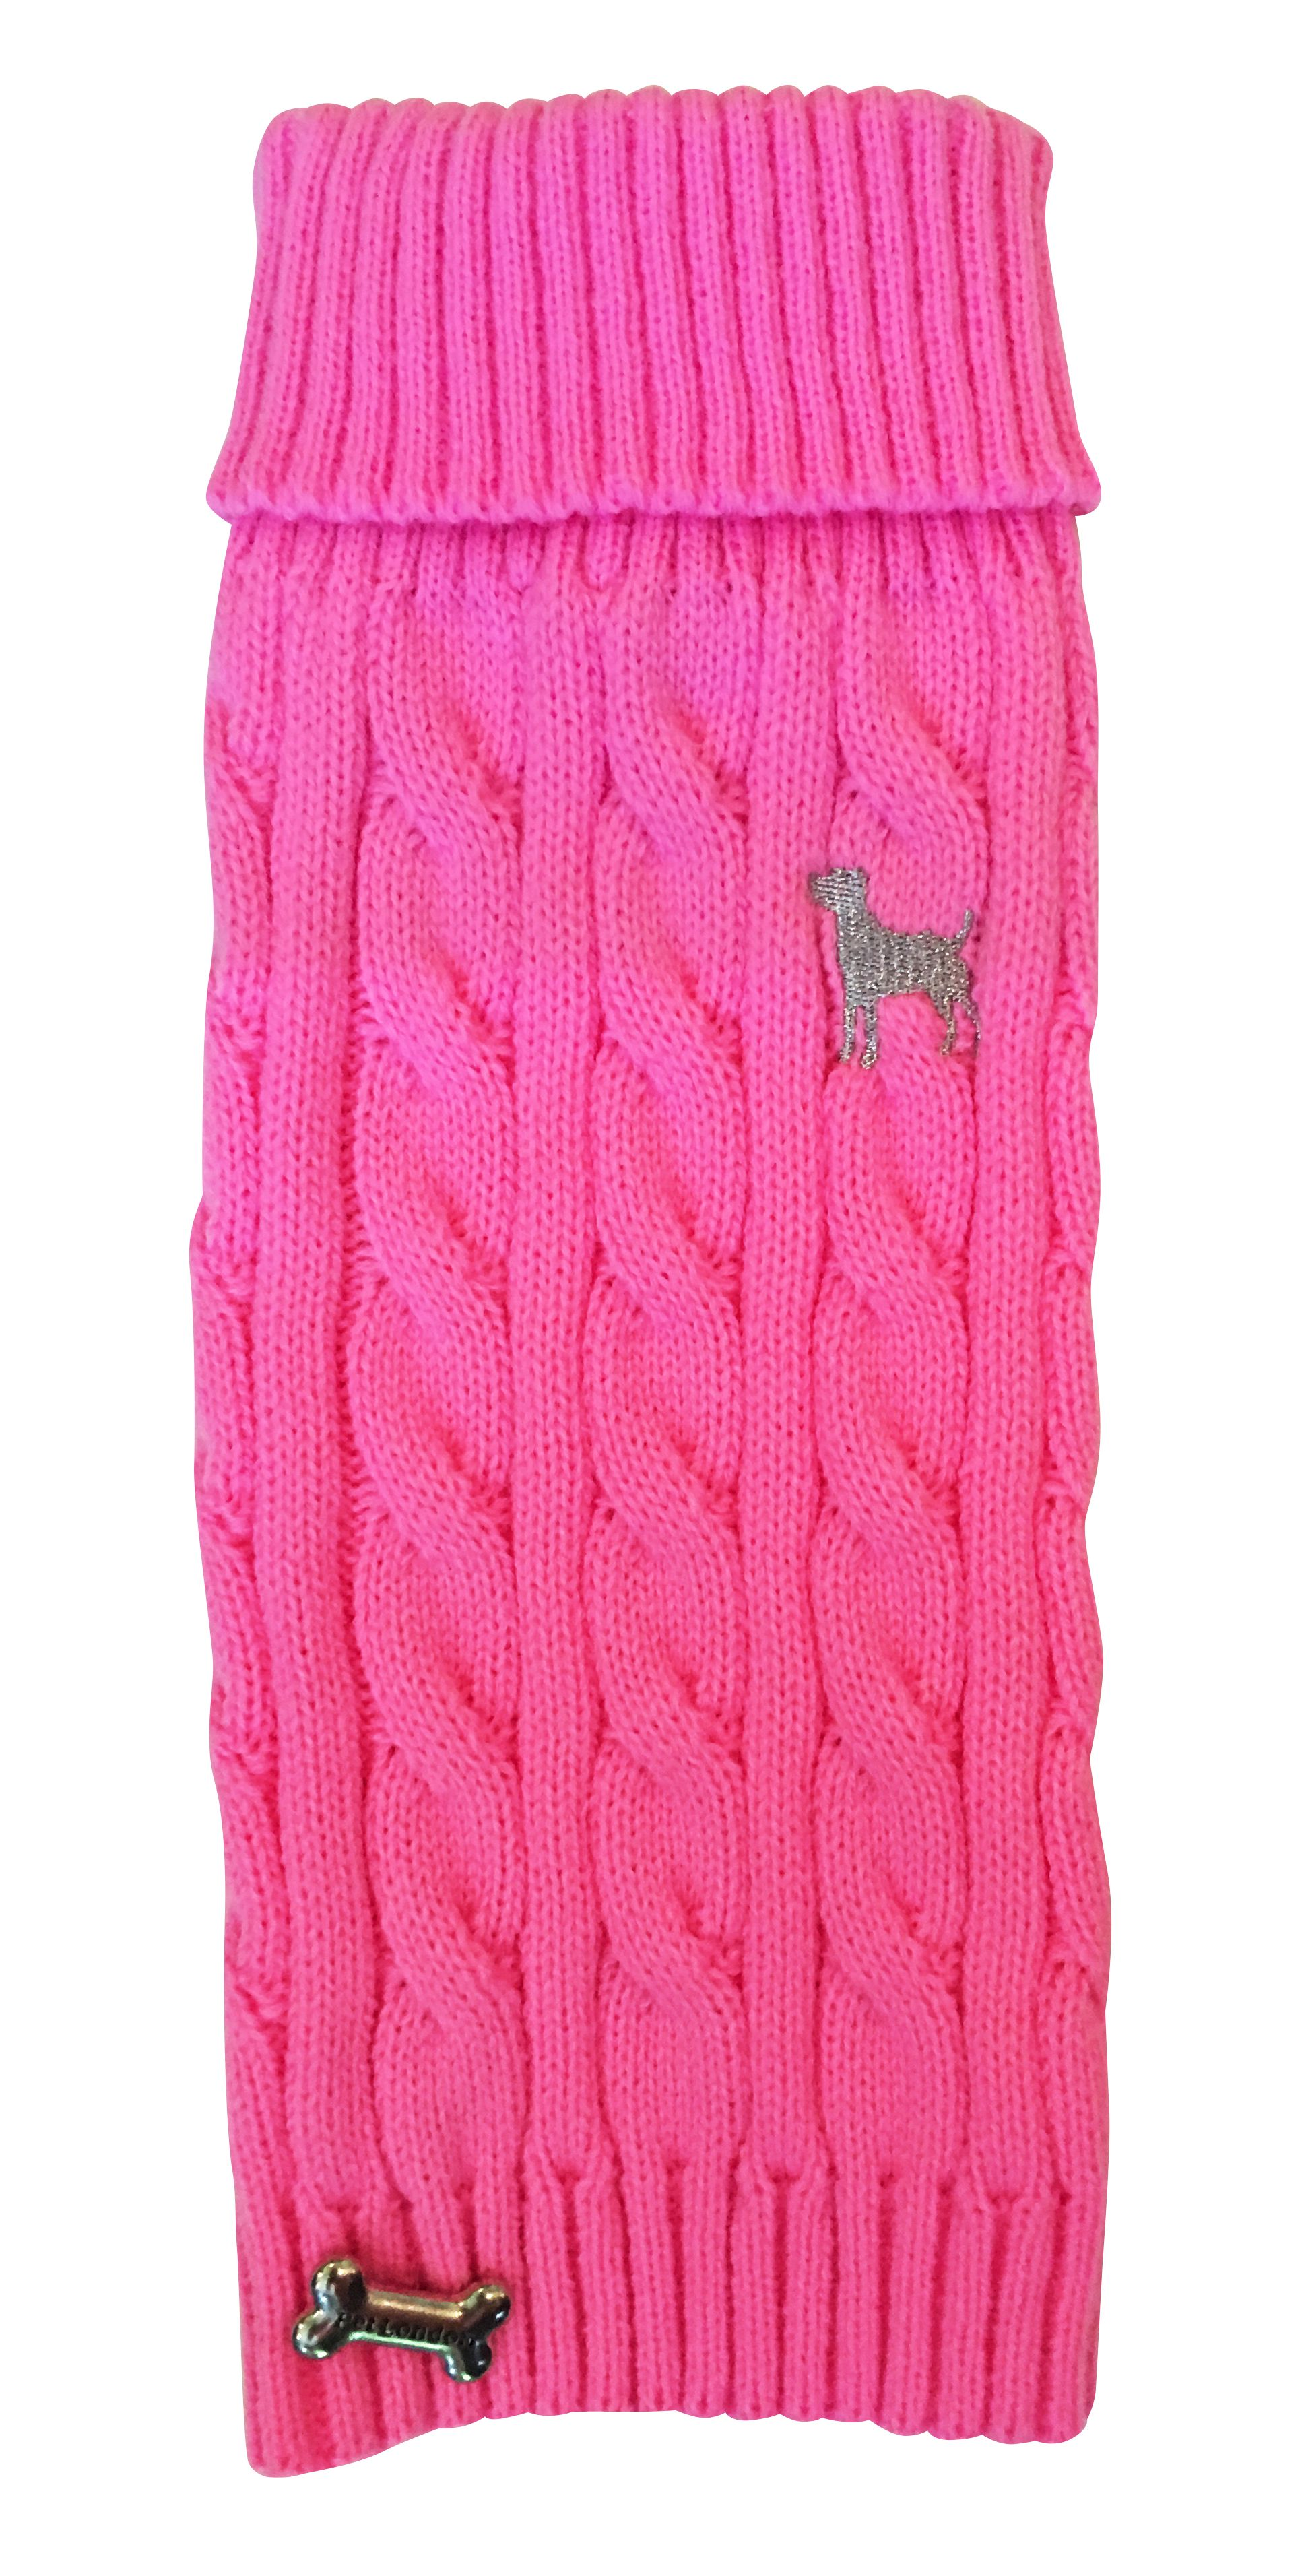 Bubblegum Pink Cable Knit jumper